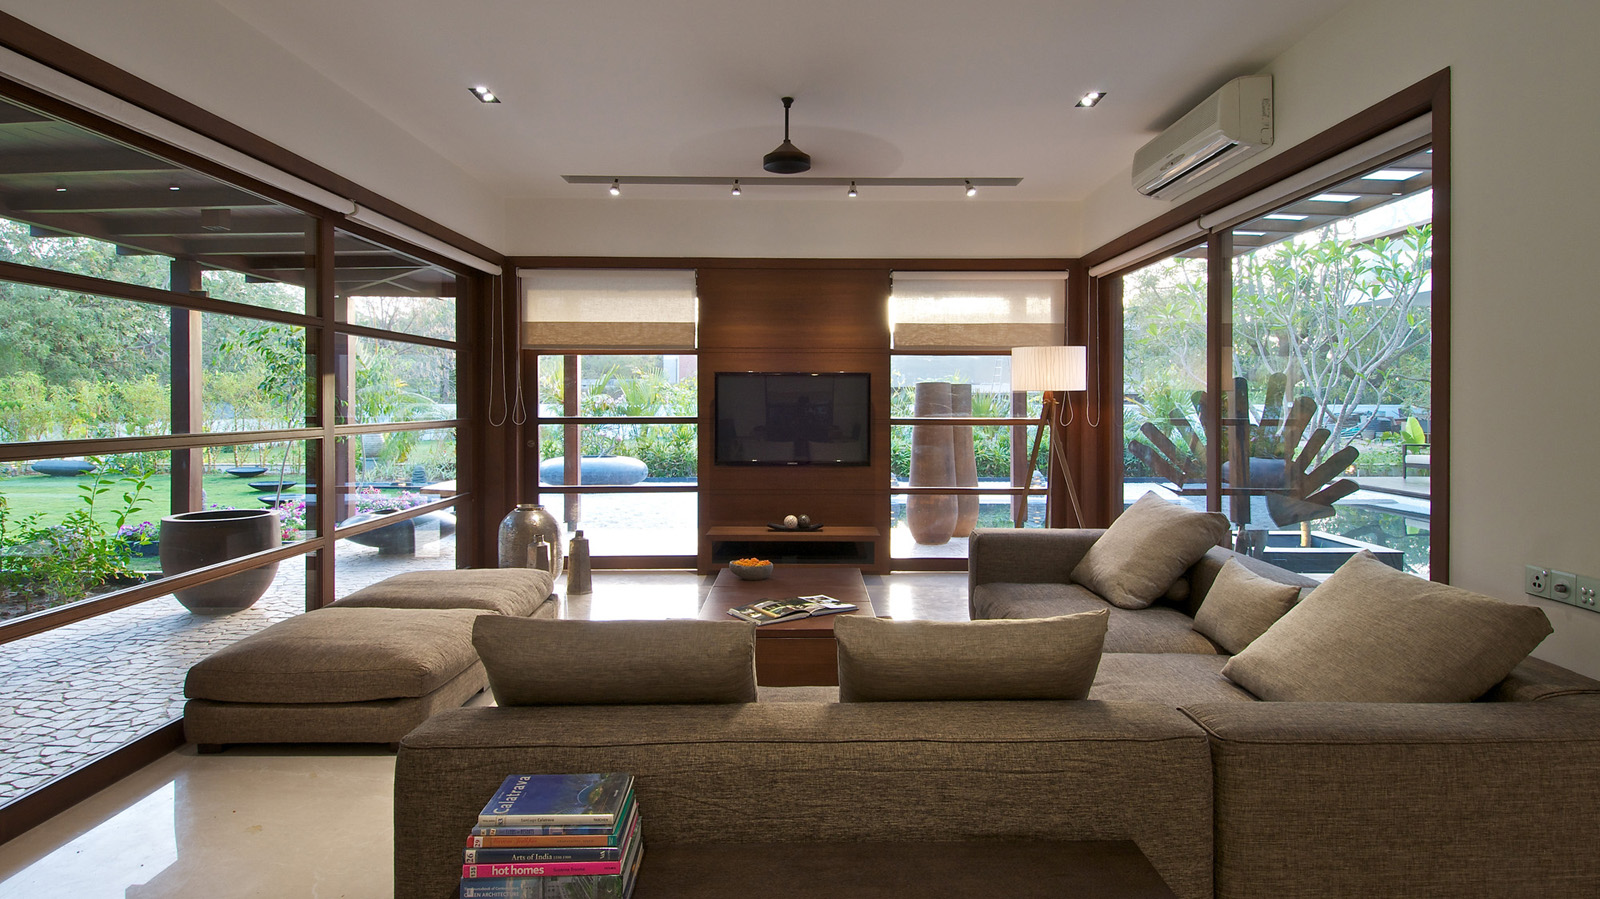 Timeless Contemporary House In India With Courtyard Zen Garden ...